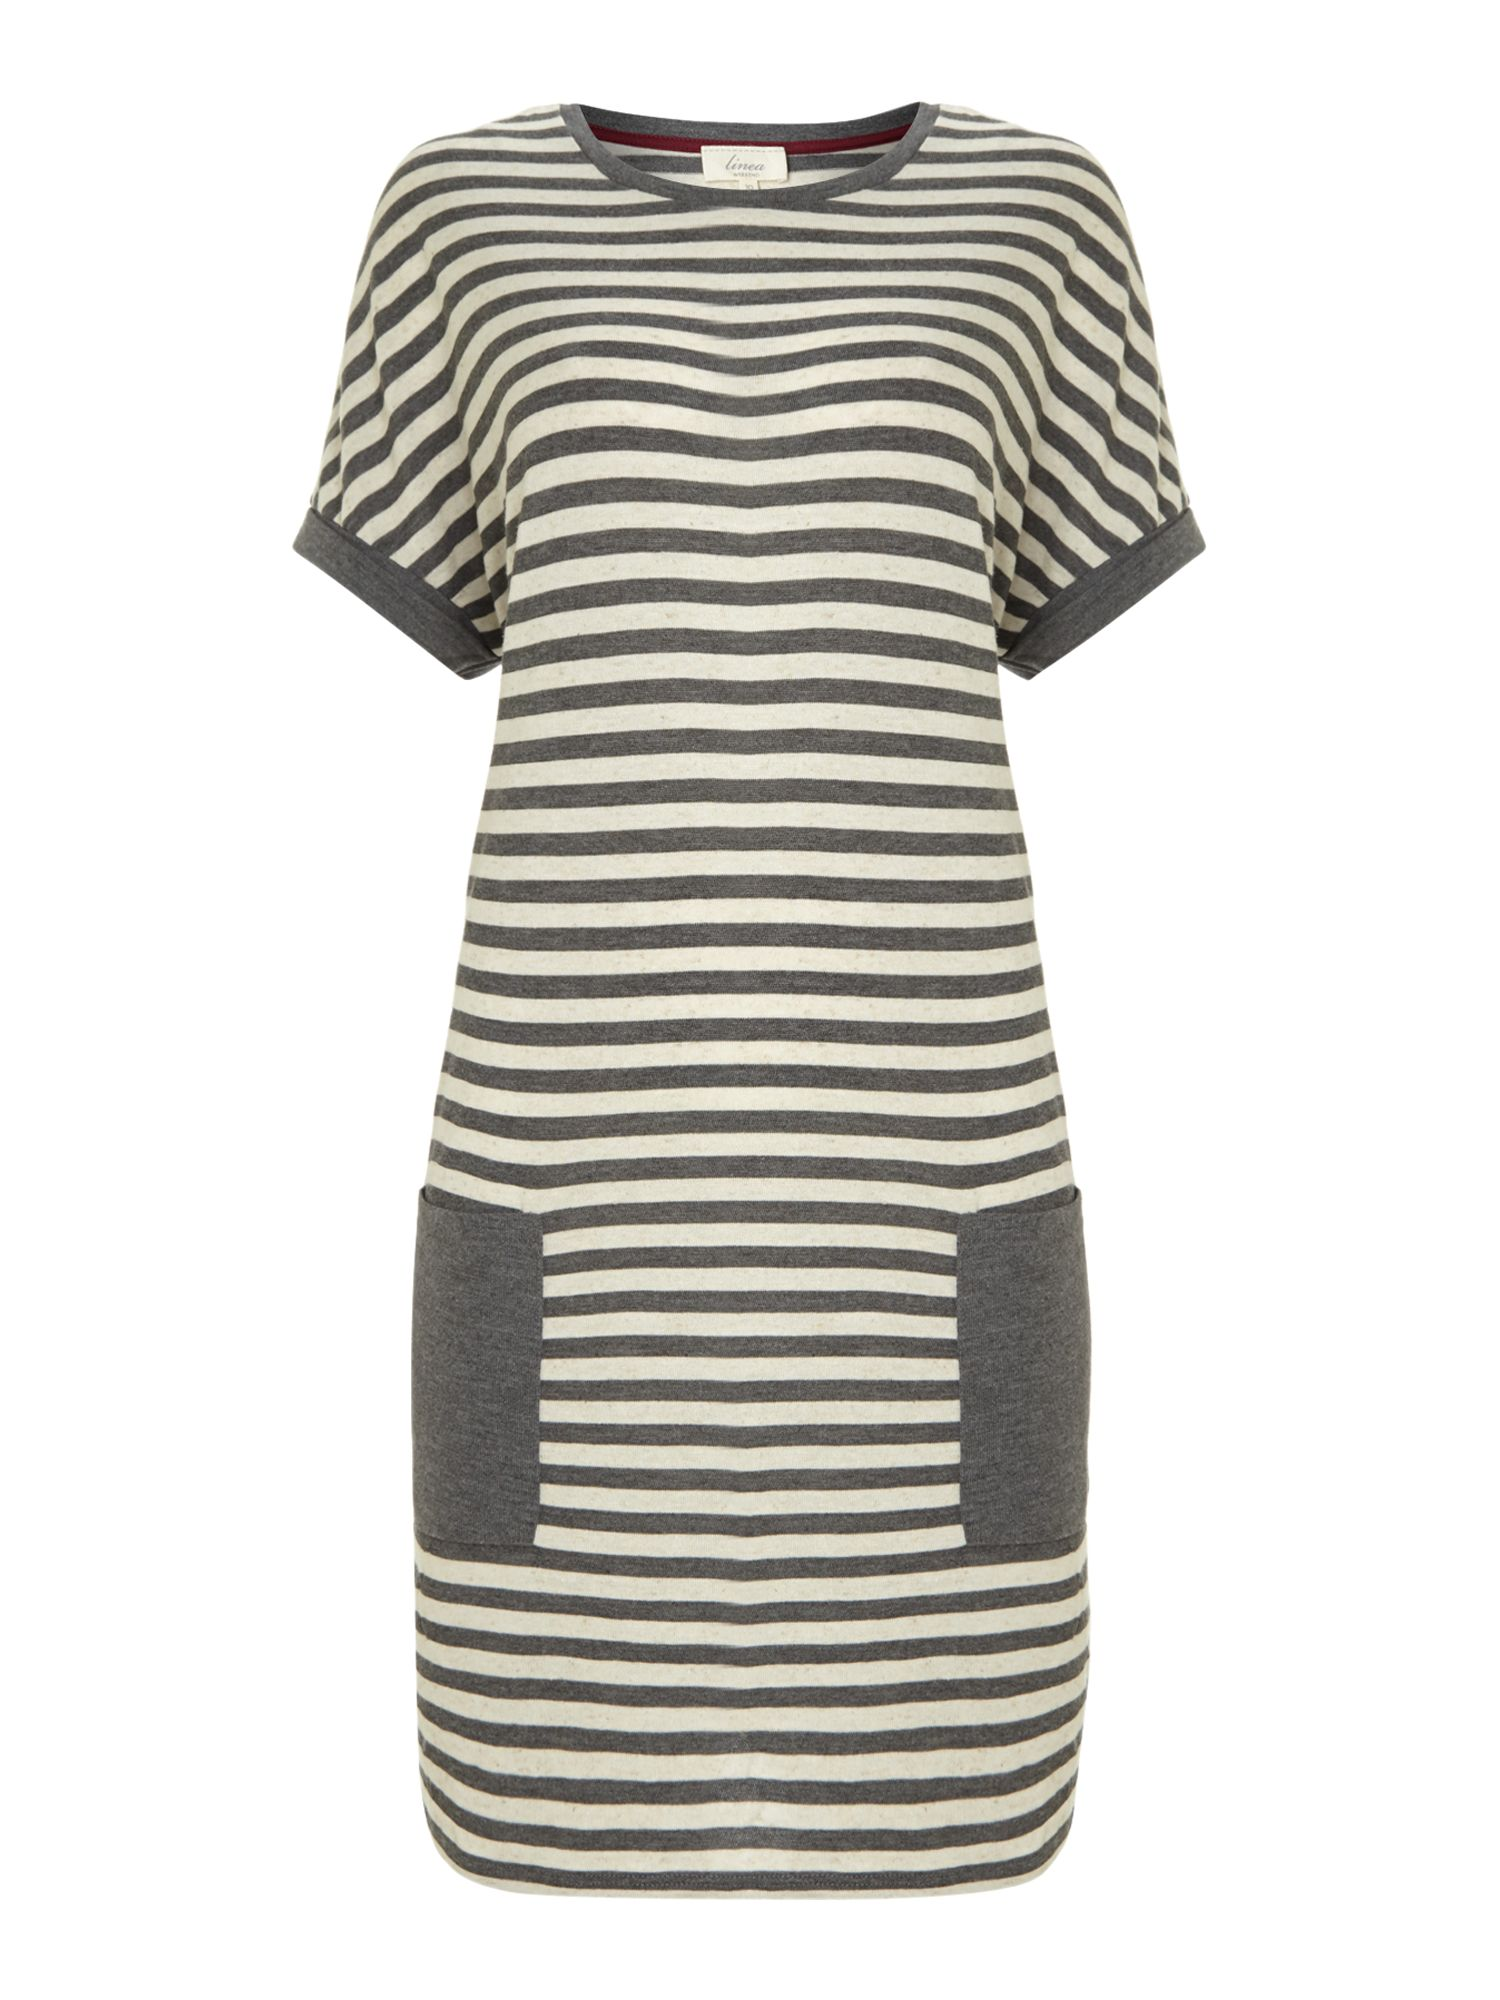 Forest stripe pocket dress